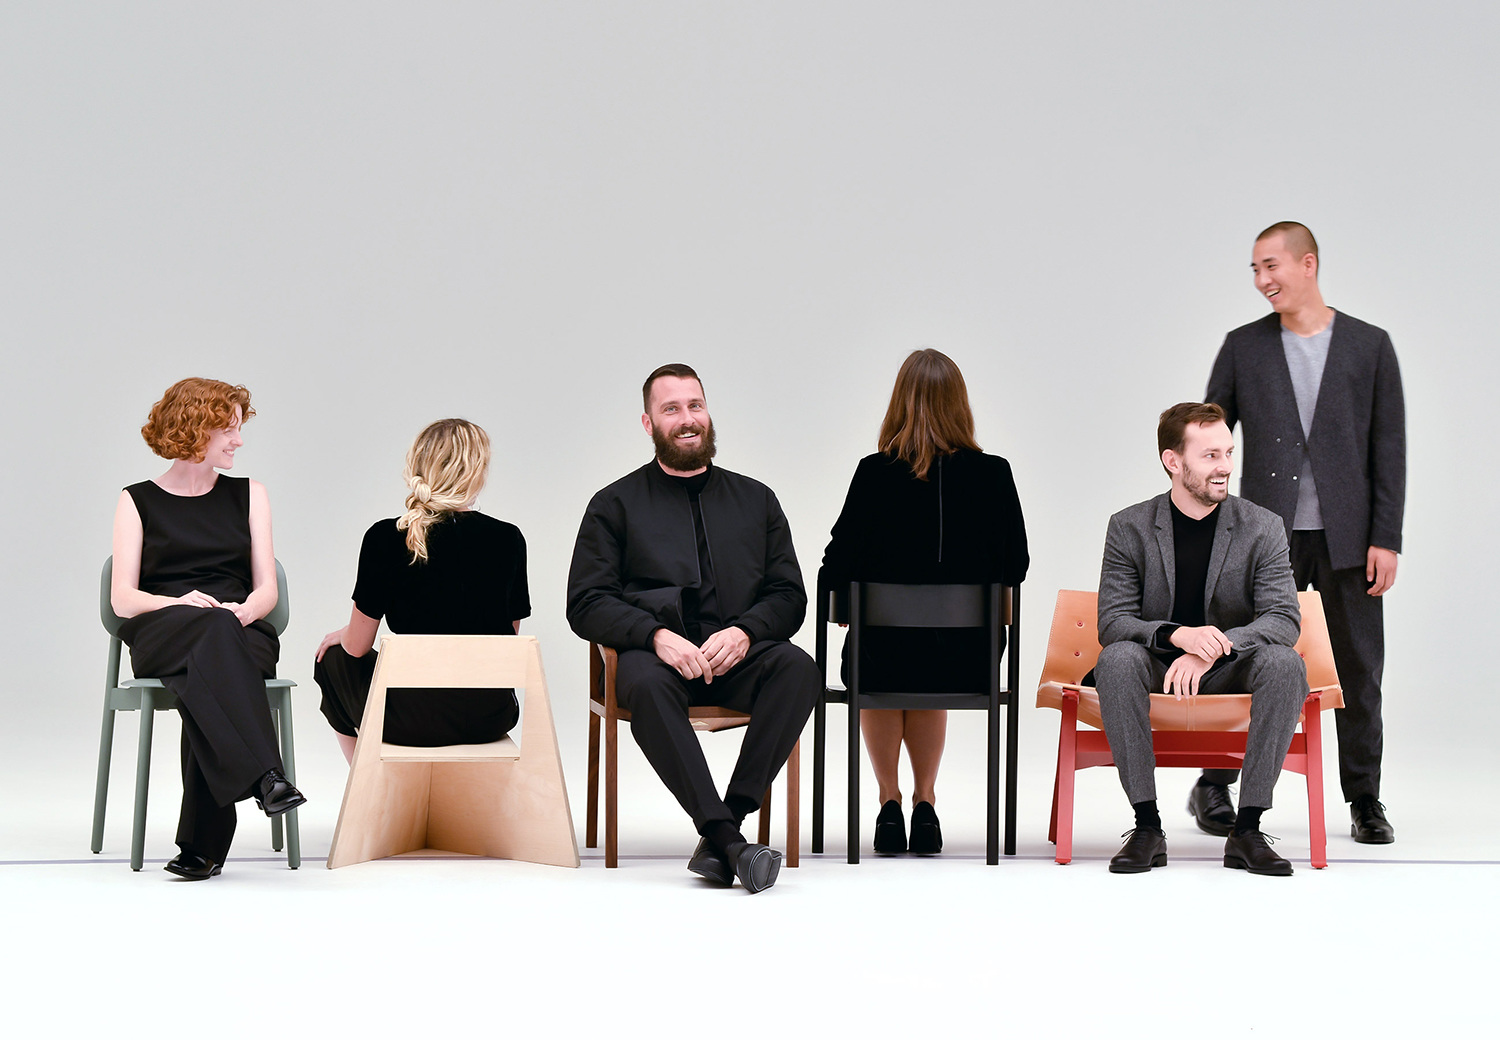 Musical chairs gif - Cos Musical Chairs